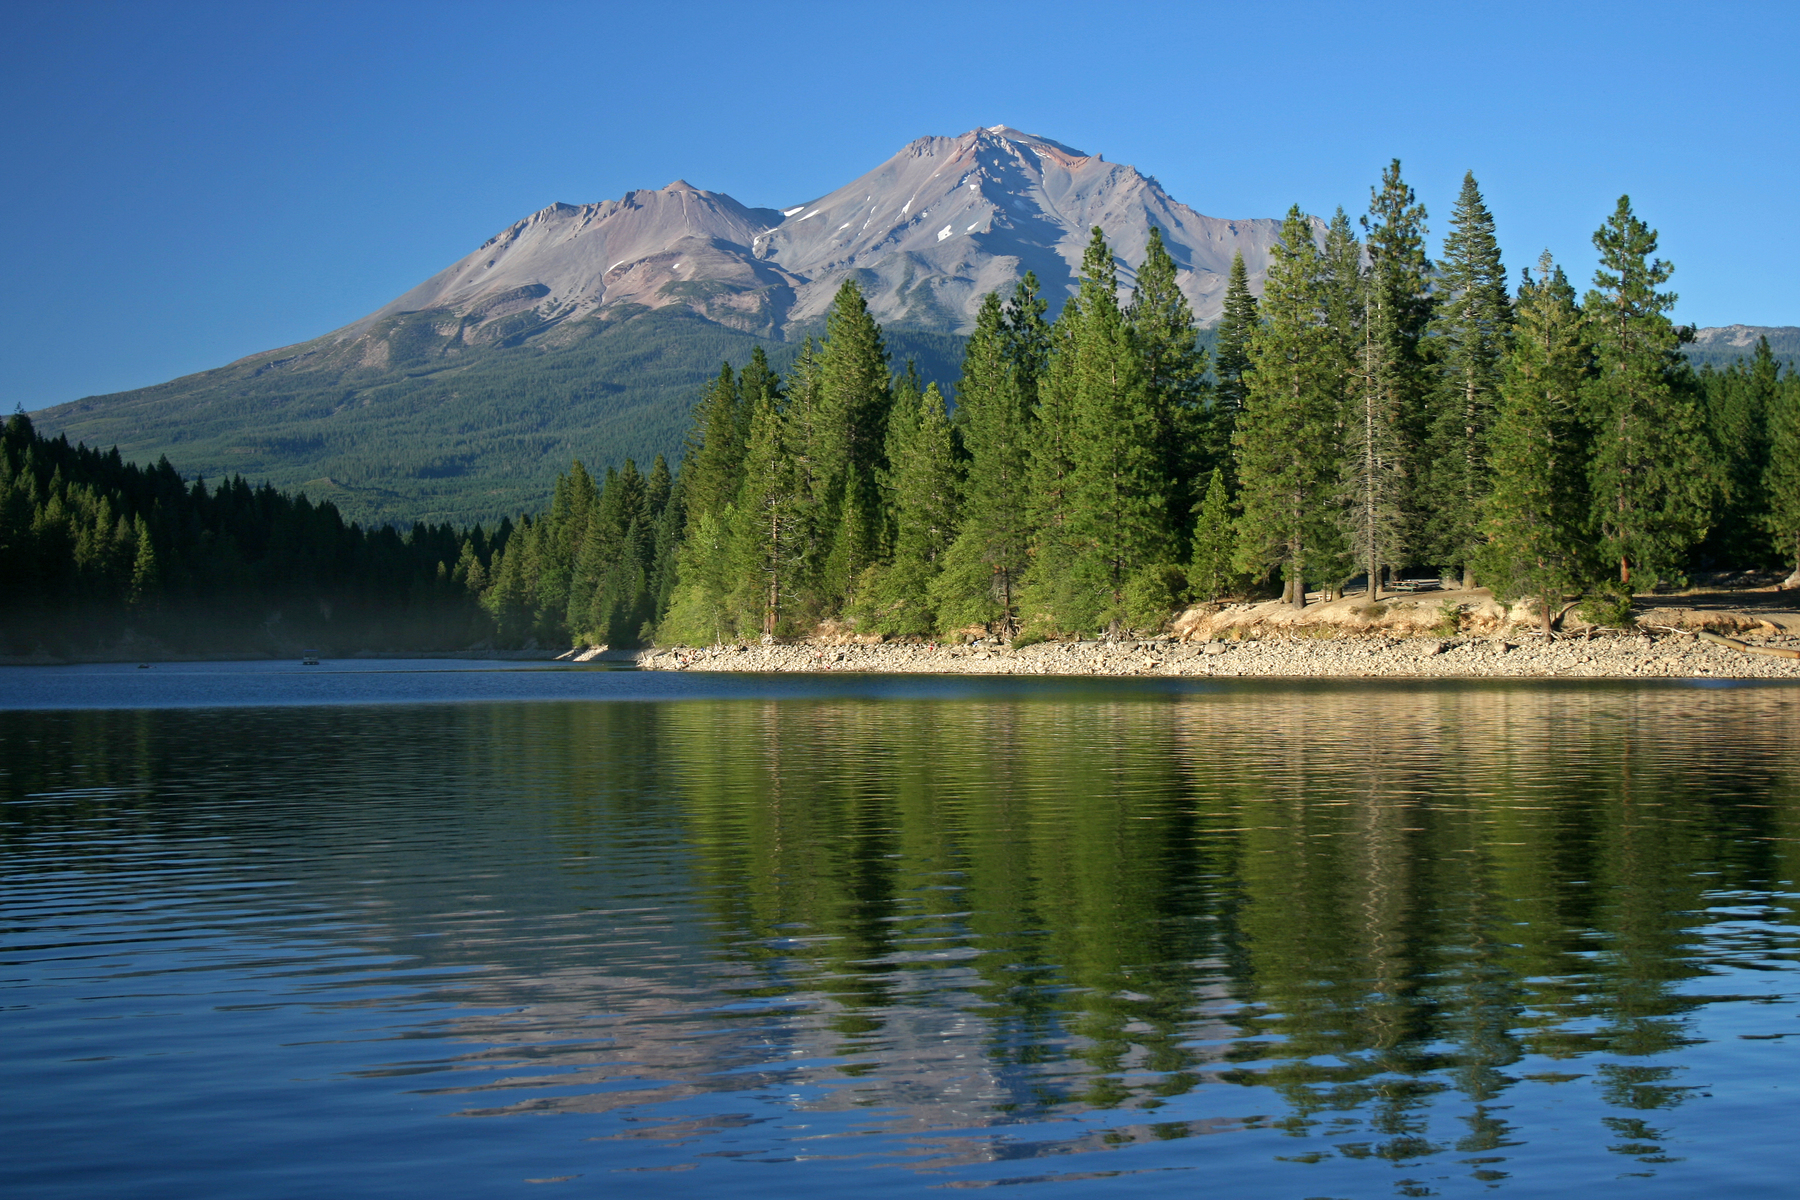 east of the town of Mt. Shasta, northern California